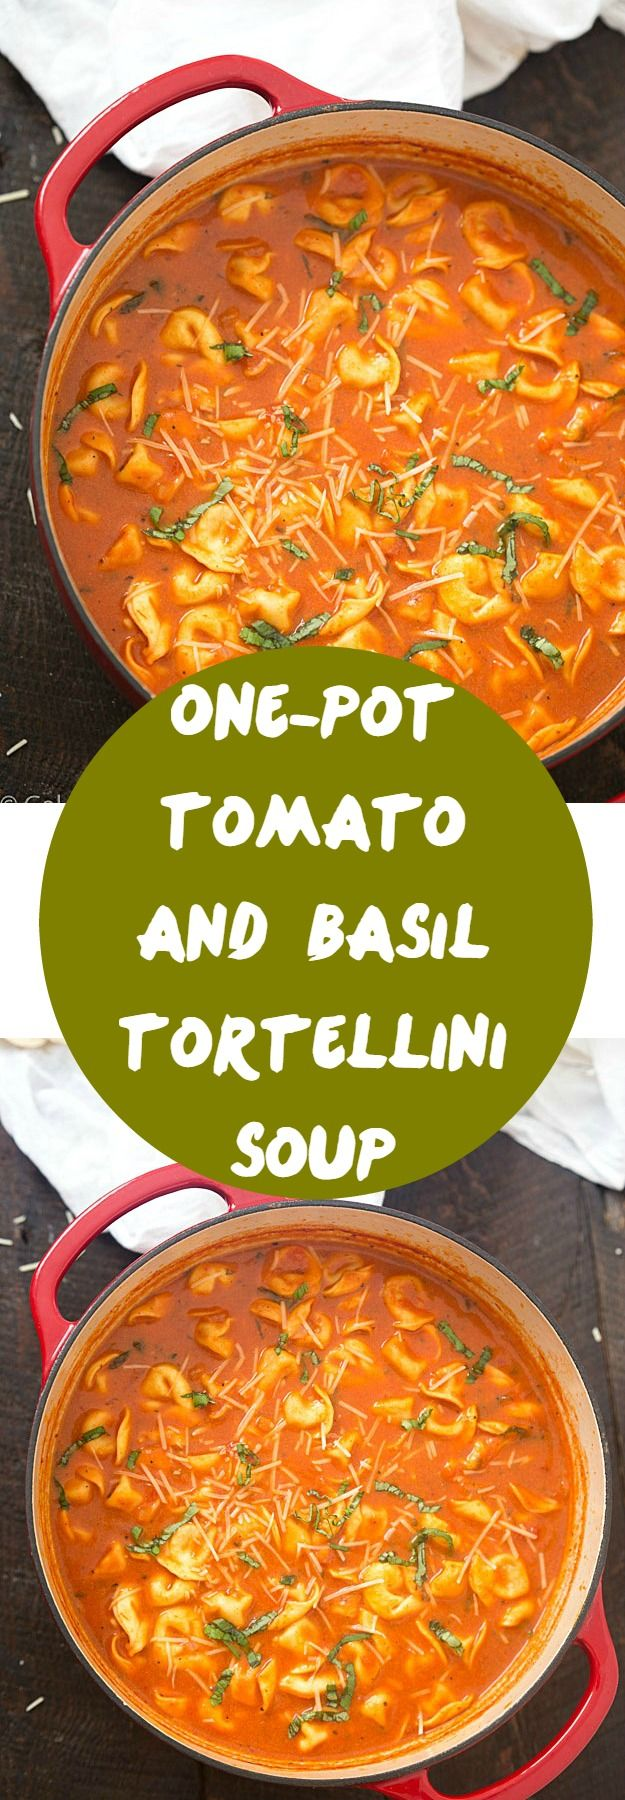 one-pot tomato and basil tortellini soup -